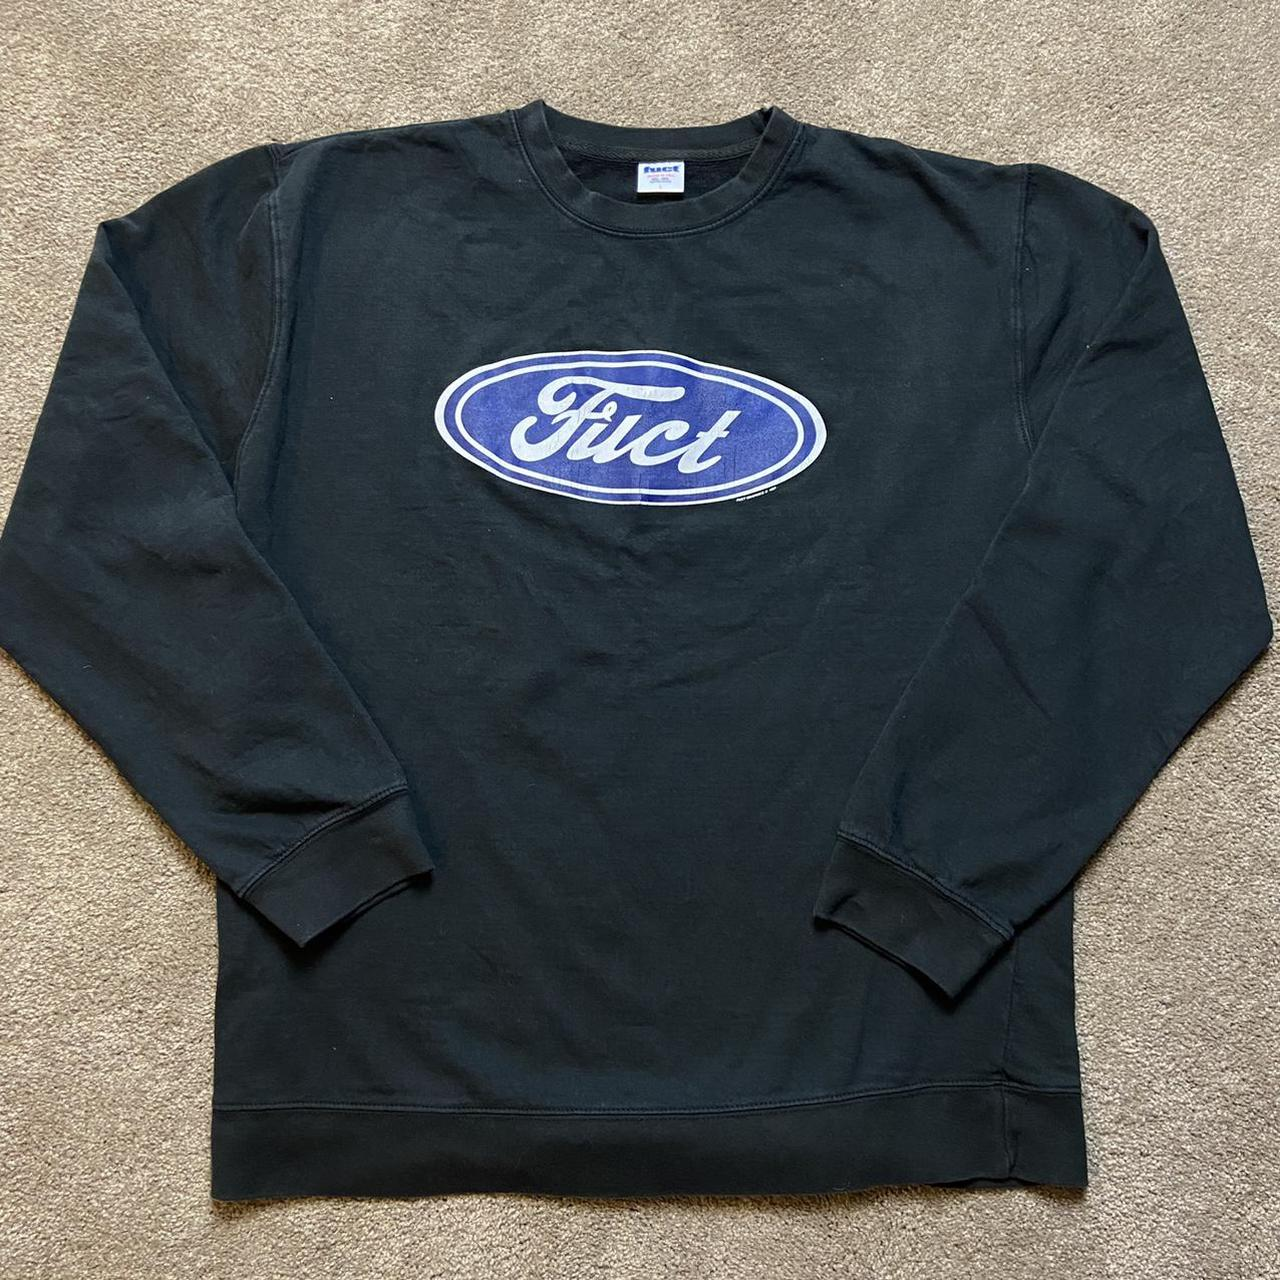 Product Image 1 - Fuct parody oval ford logo